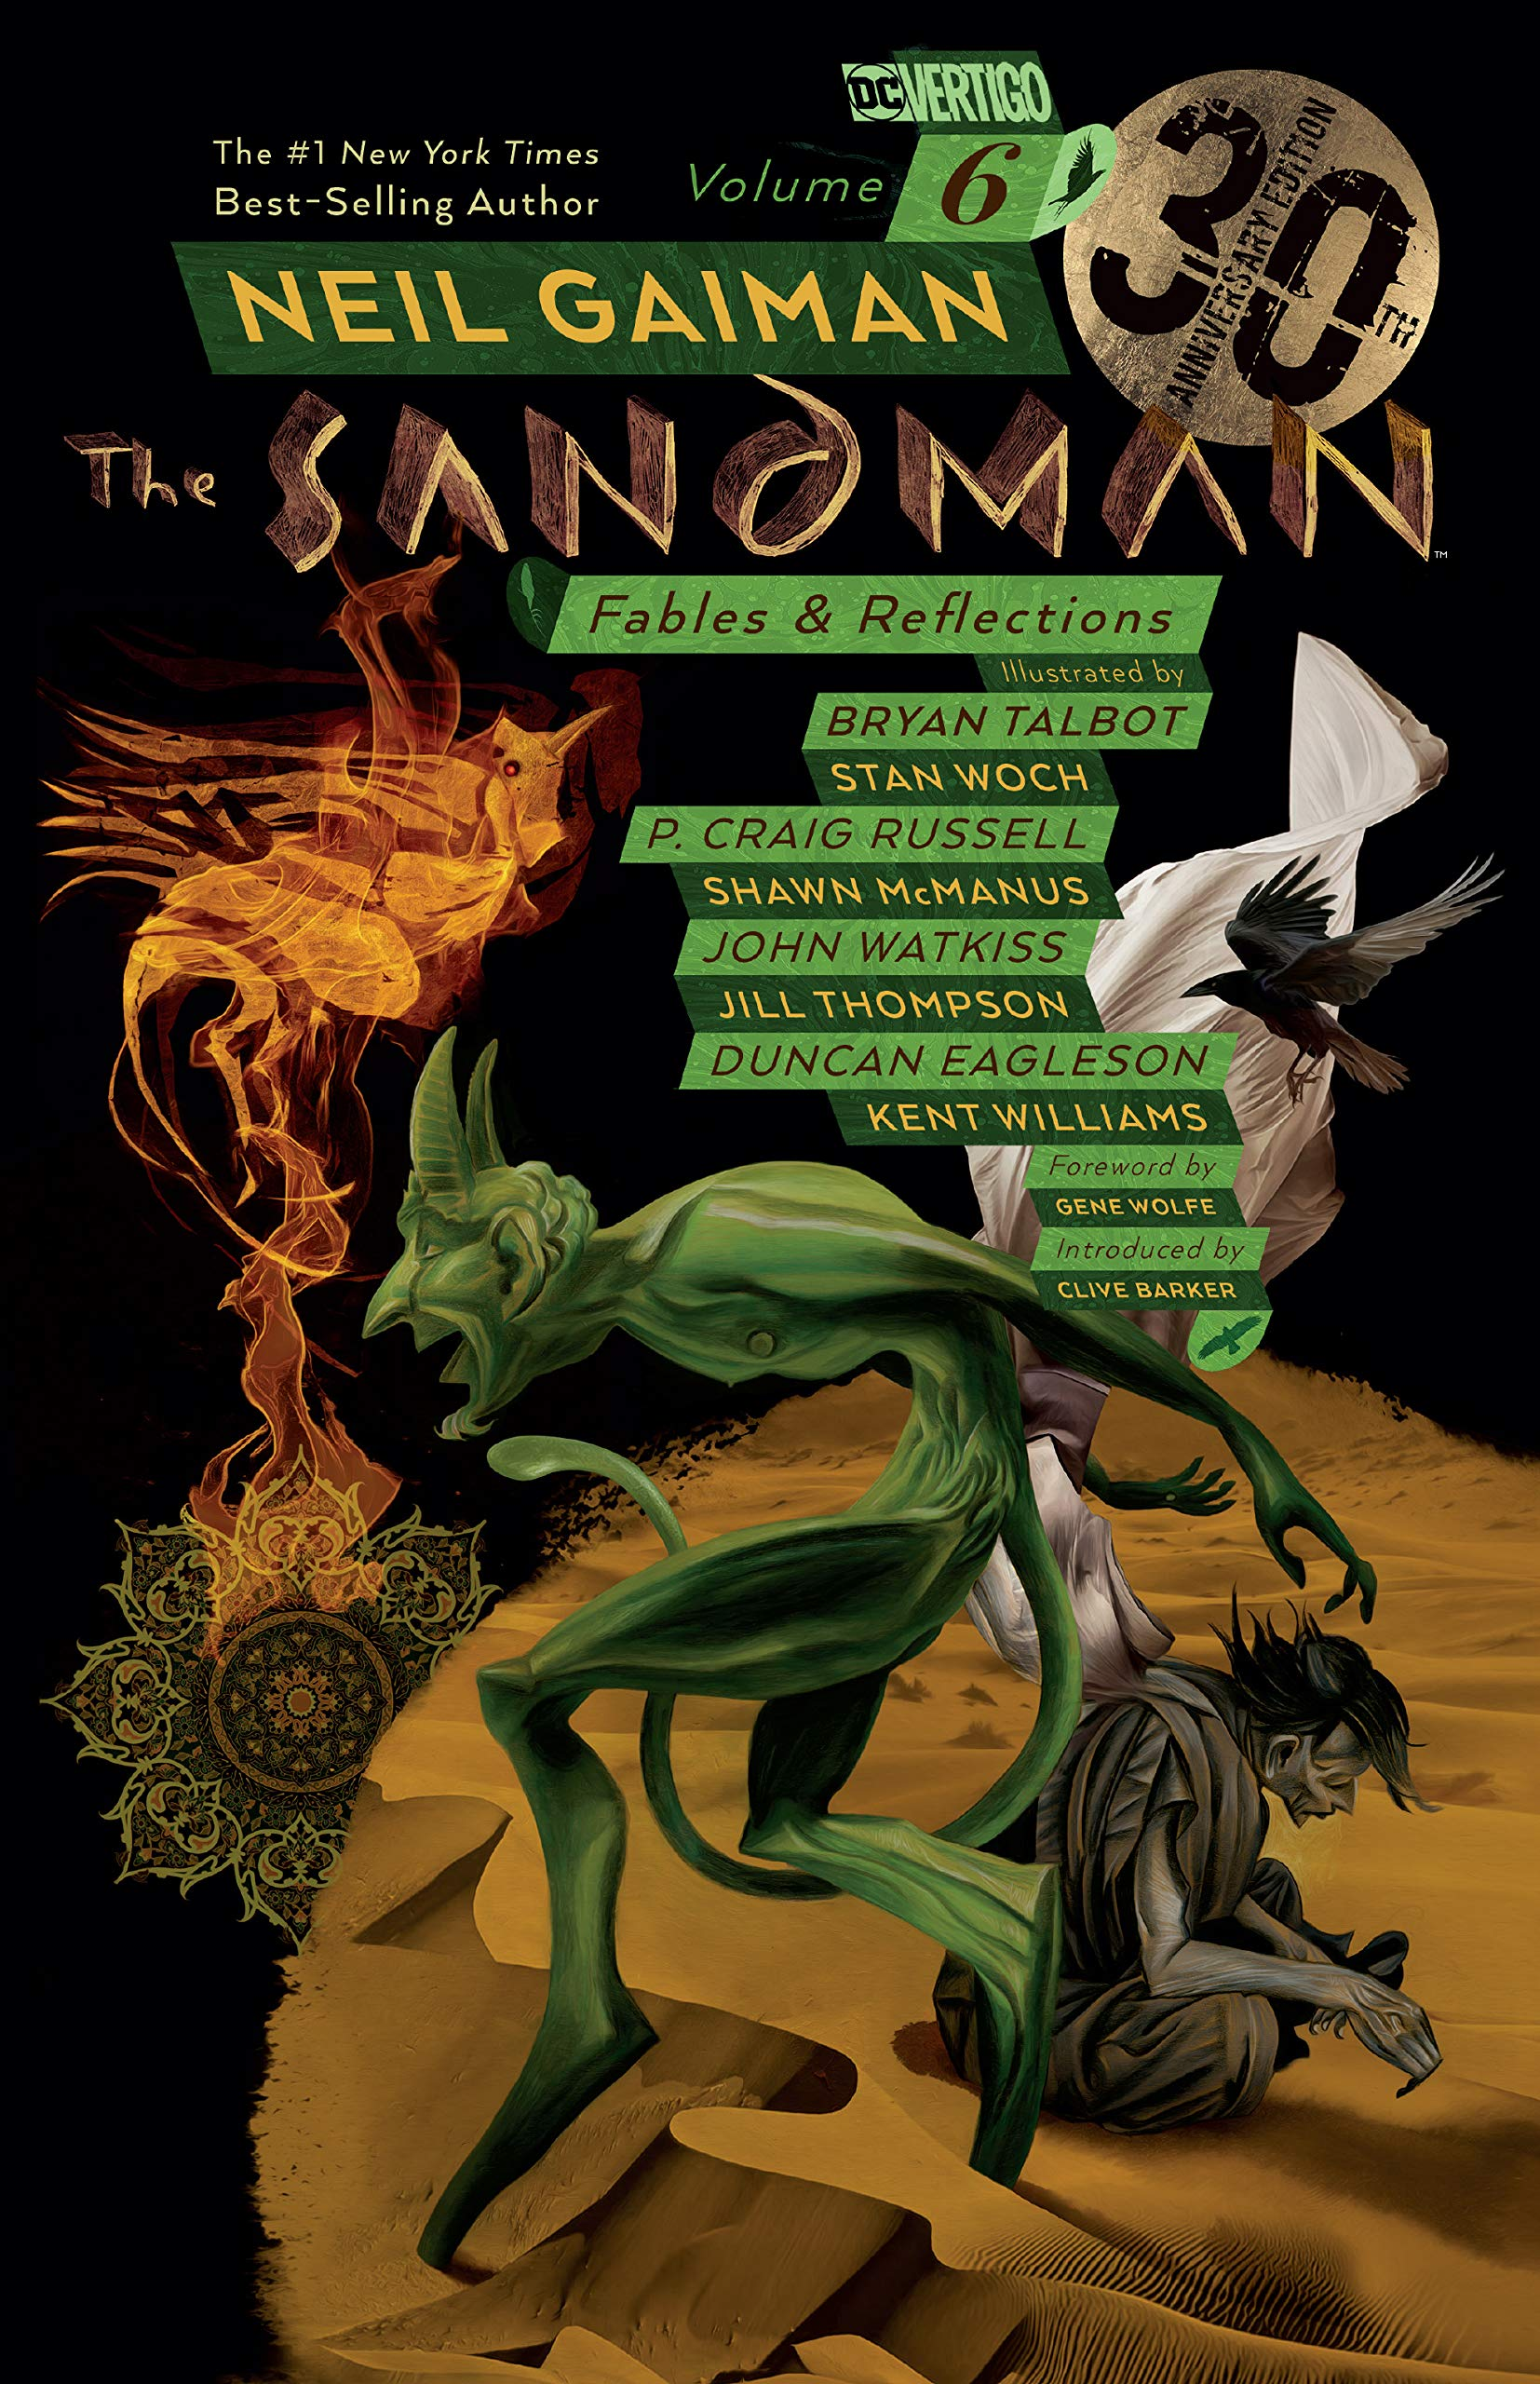 The Sandman, Vol. 6: Fables & Reflections, book cover